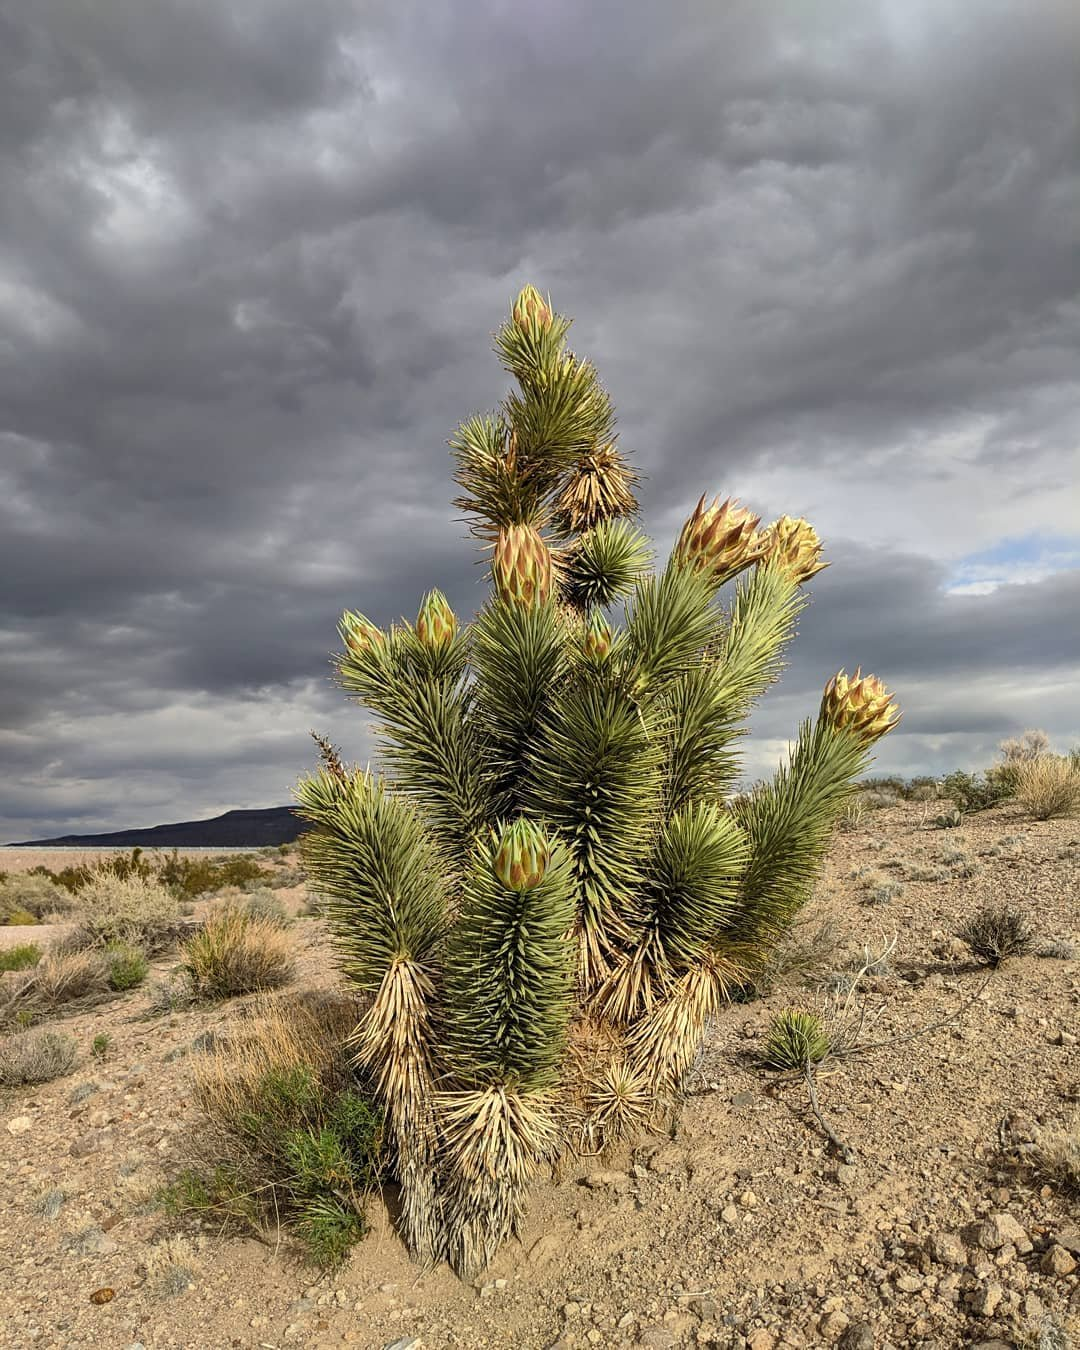 Joshua tree in bloom. #pahranagatnationalwildliferefuge #pahranagat #pahranagatvalley #joshuatree #inbloom #overcast #cloudy  #naturephotography #nature #desertplants #optoutdoors #explorenevada